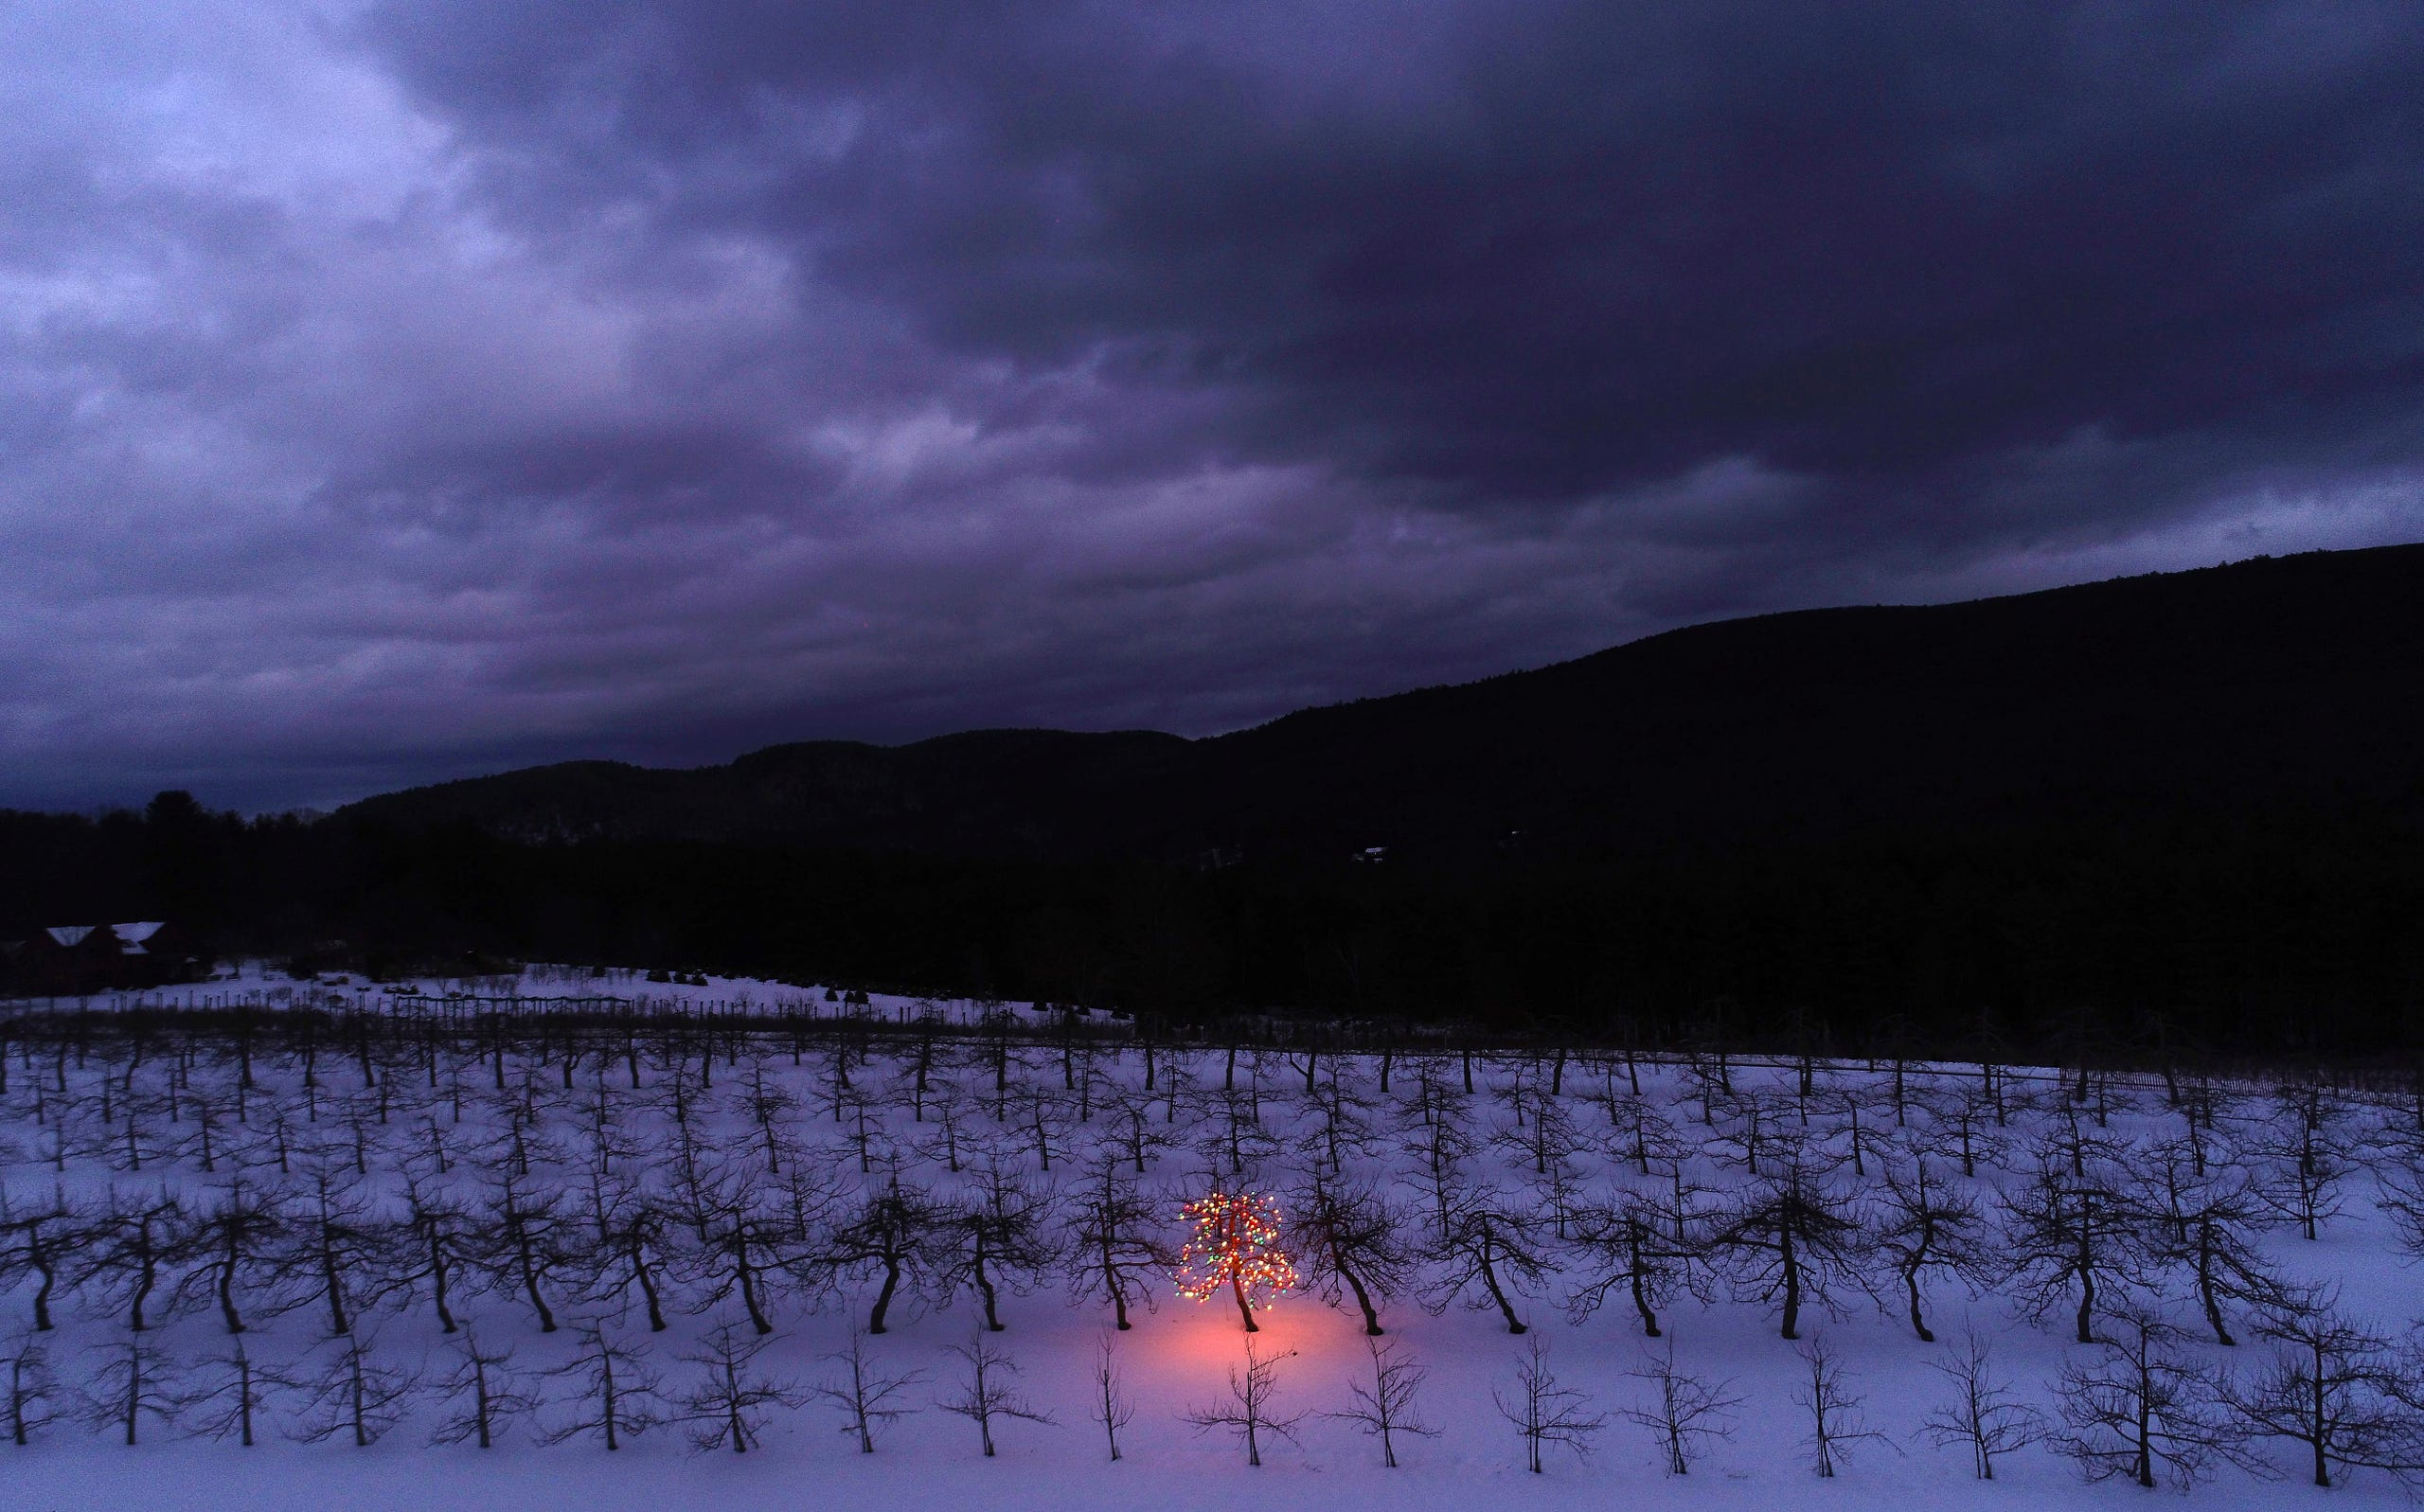 A lone apple tree is lit up in Christmas lights at Windy Hill Farm in Great Barrington, Mass. Tuesday, Dec. 22, 2020.